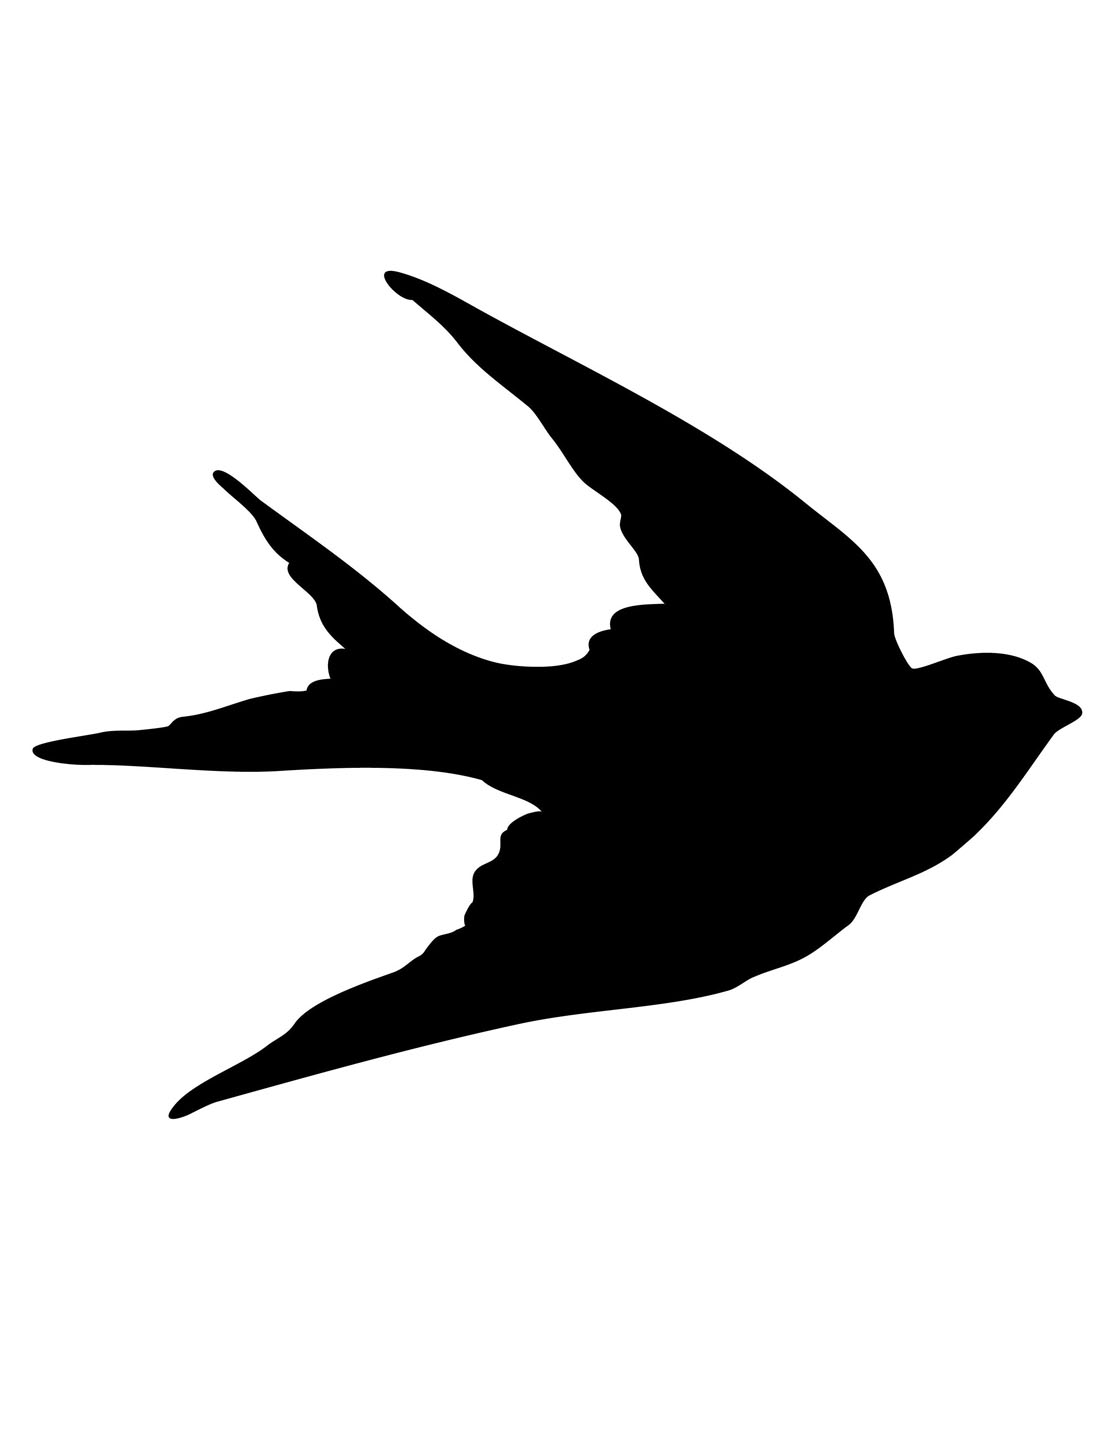 Transfer Printables Bird Silhouettes Swallows The Graphics Fairy